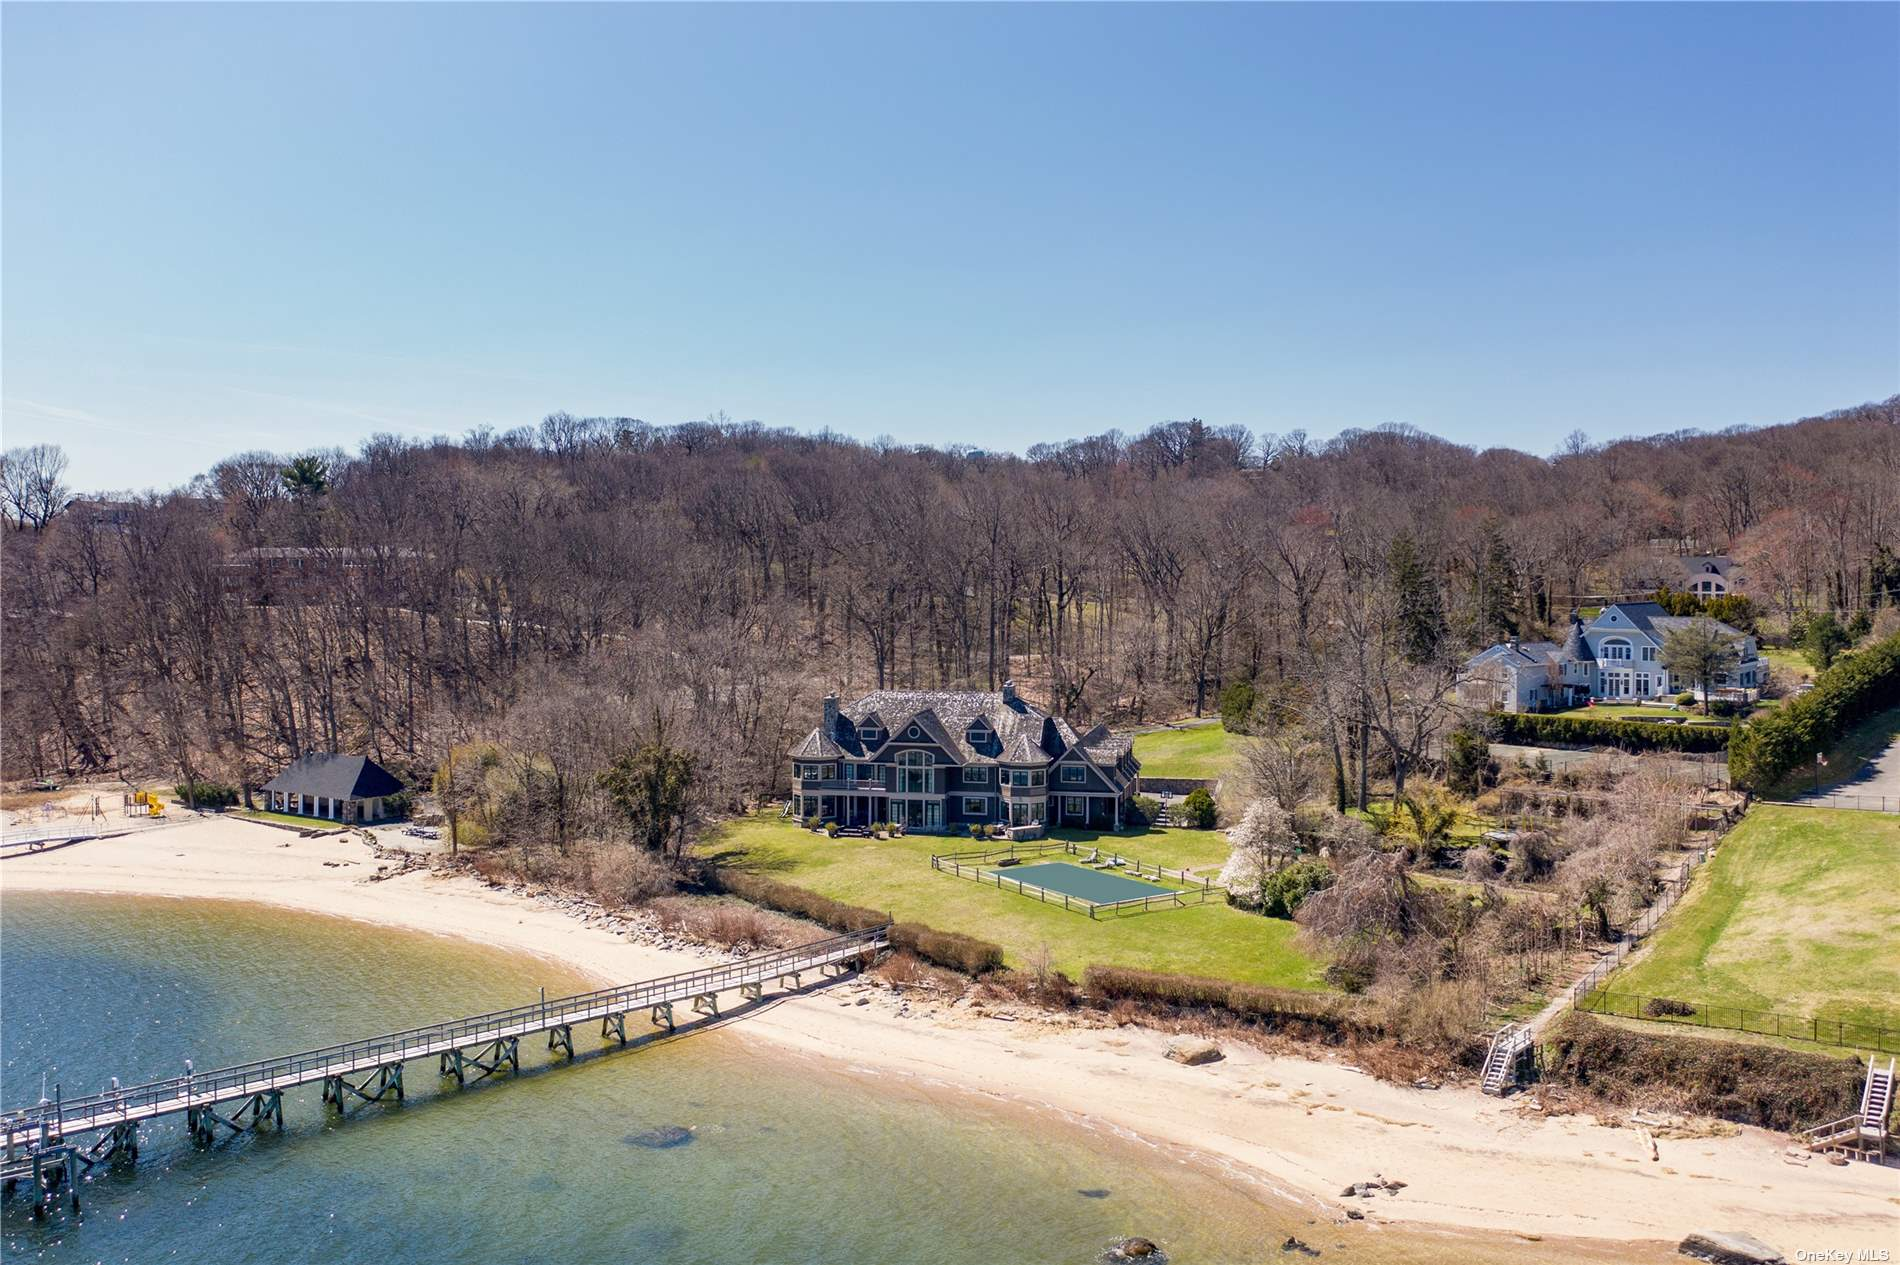 Welcome to 263 Harbor Acres Road, a beautiful 6 bedroom and 7 bathroom Hamptons style shingle home built in 2004 on over 4 acres of prime waterfront land in the esteemed Village of Sands Point. This exceptional property features 360ft of water frontage, an in-ground pool, deep water dock, tennis court, a prolonged tree lined driveway, a built-in outdoor stone kitchen and patio, a elevated garden with fountain and access to your very own private, sandy beach- all emphasizing the breathtaking views of the harbor.